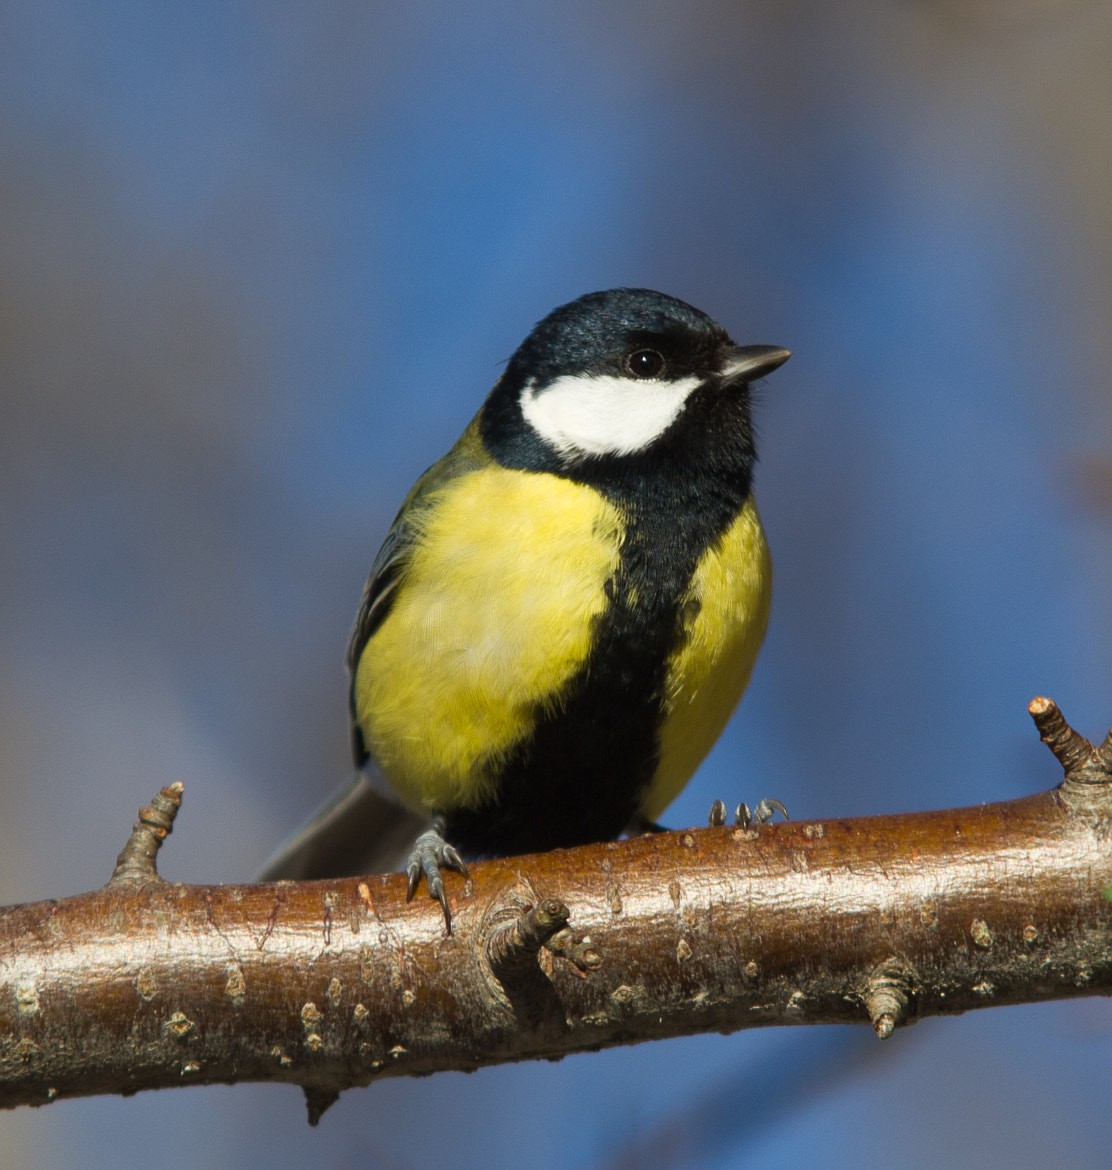 Photograph Tit, relaxing in the sun by Mai-Britt Lundervold on 500px